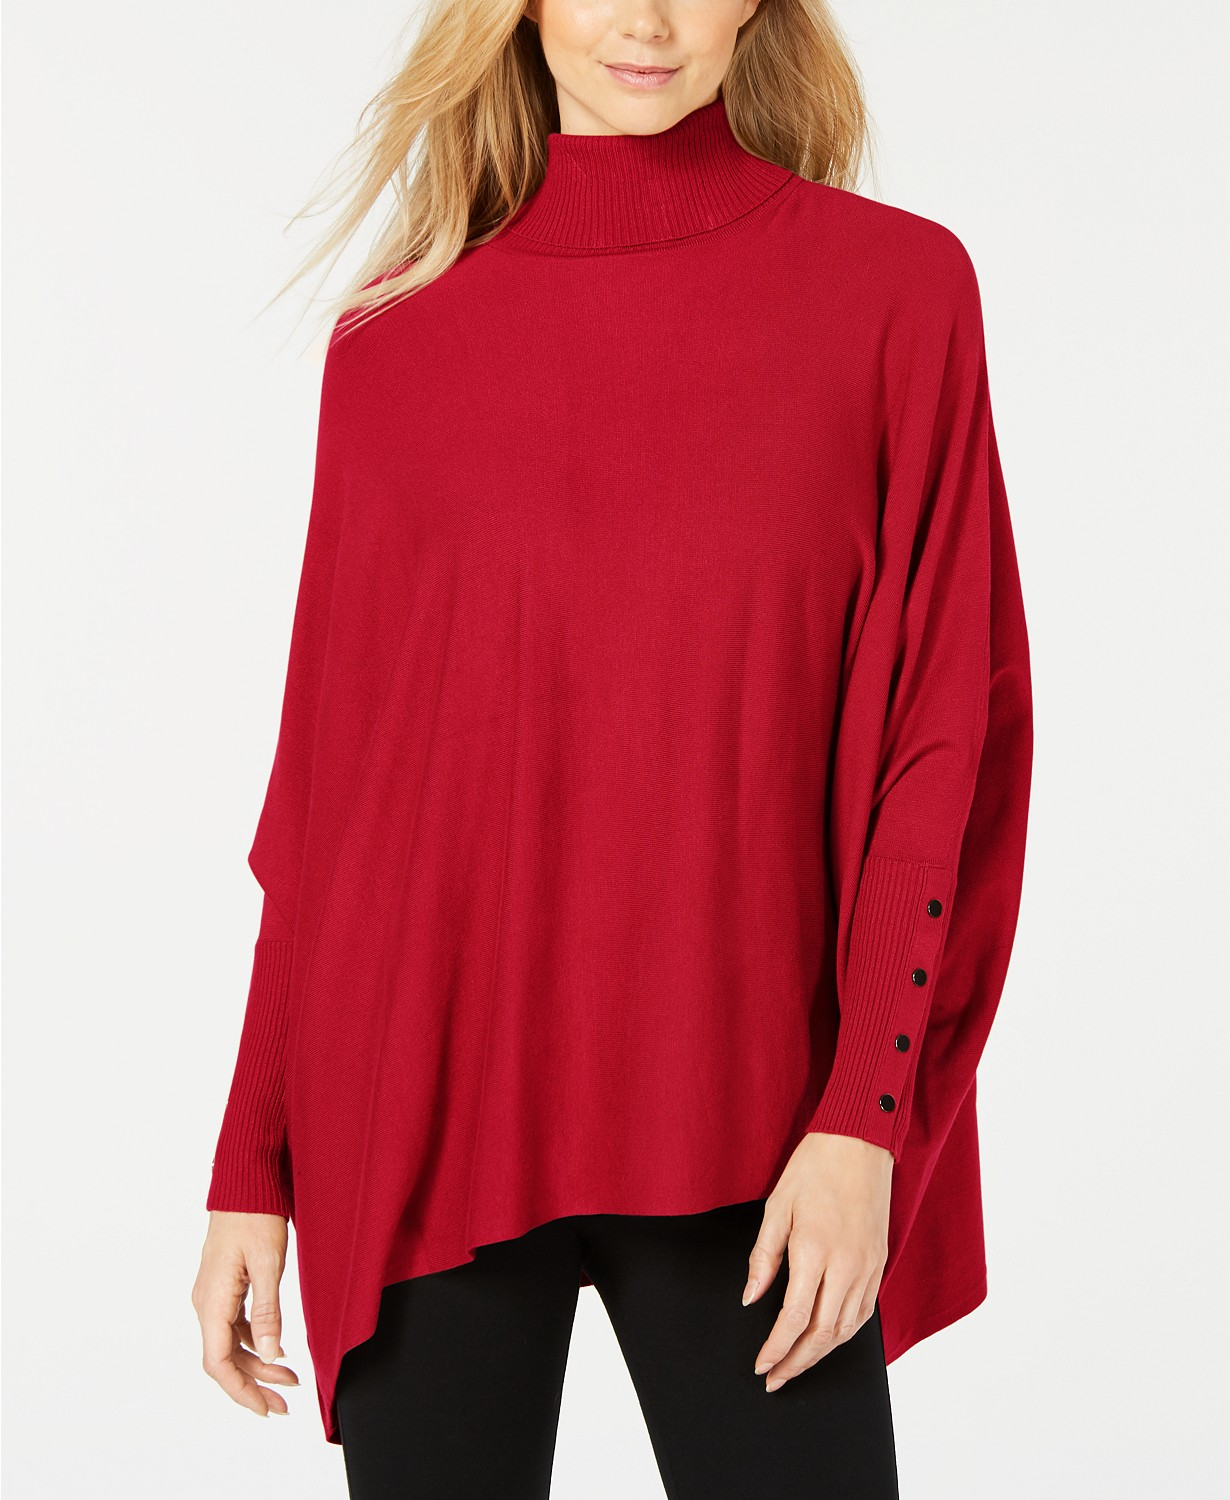 red poncho sweater